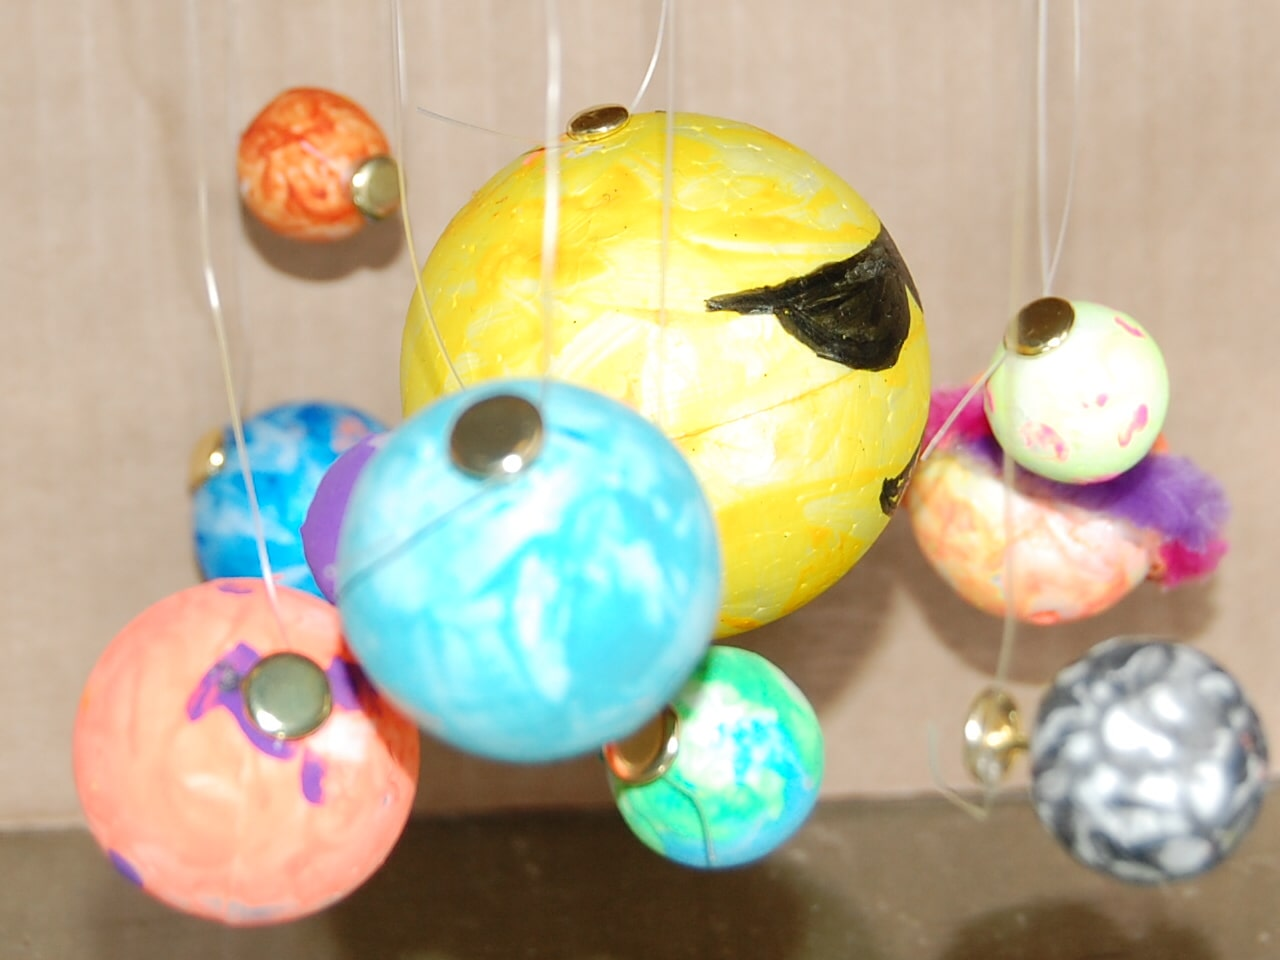 Diorama of painted planets.